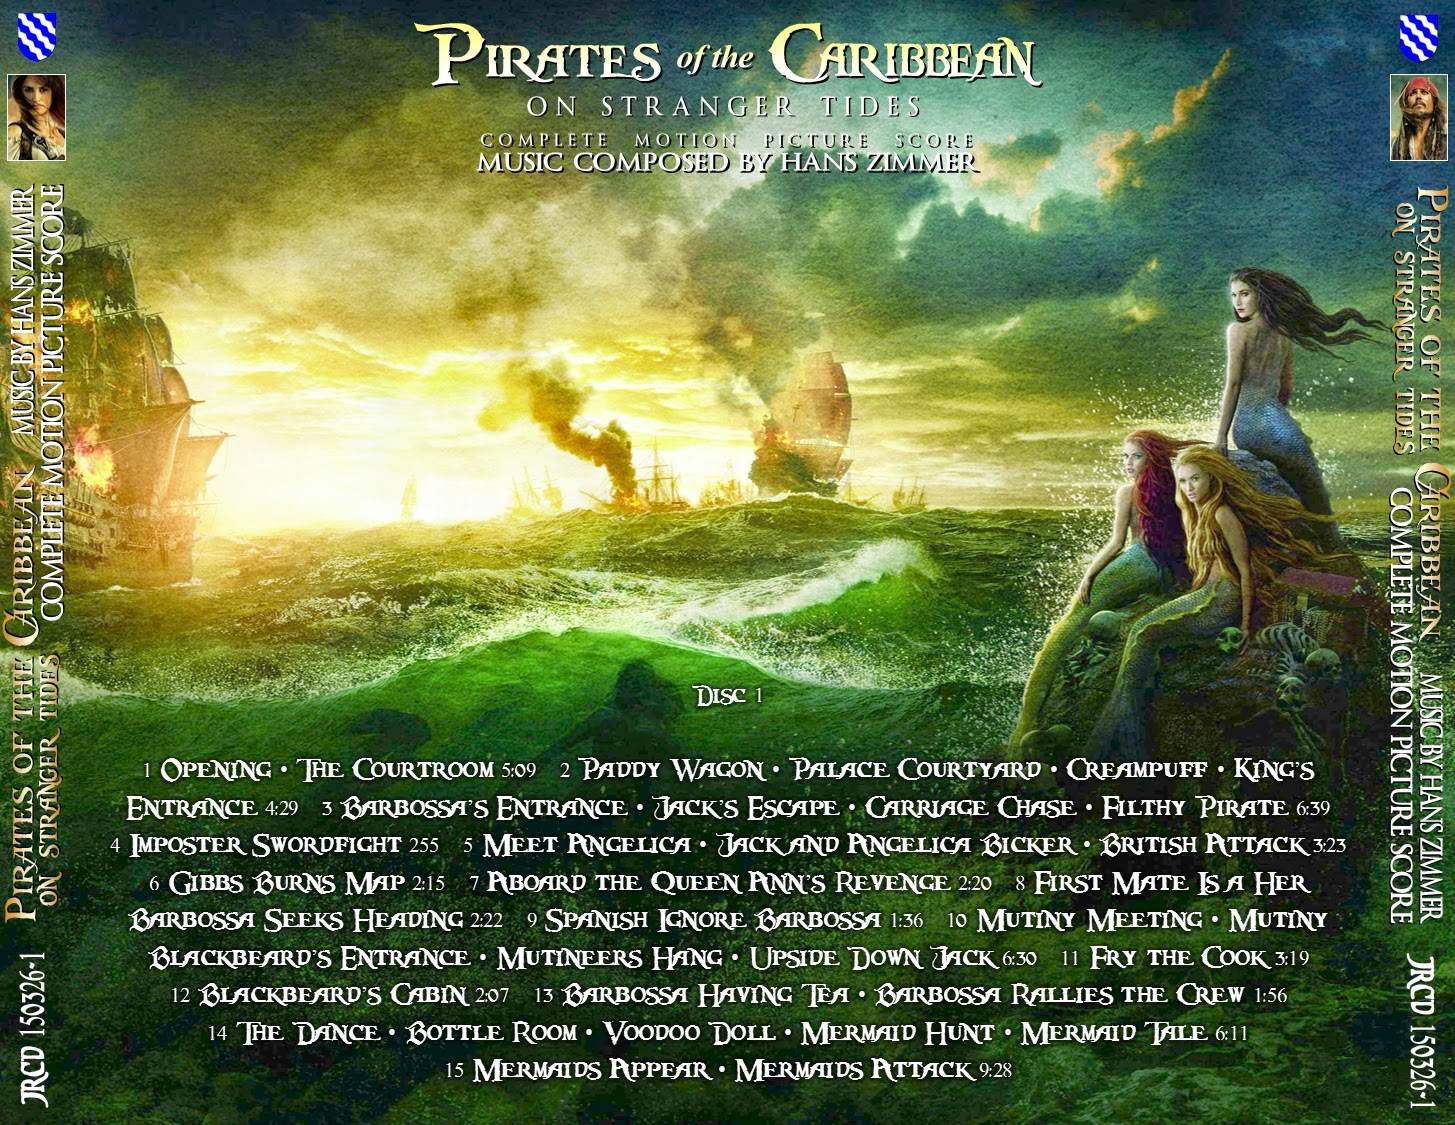 LE BLOG DE CHIEF DUNDEE: PIRATES OF THE CARIBBEAN: ON